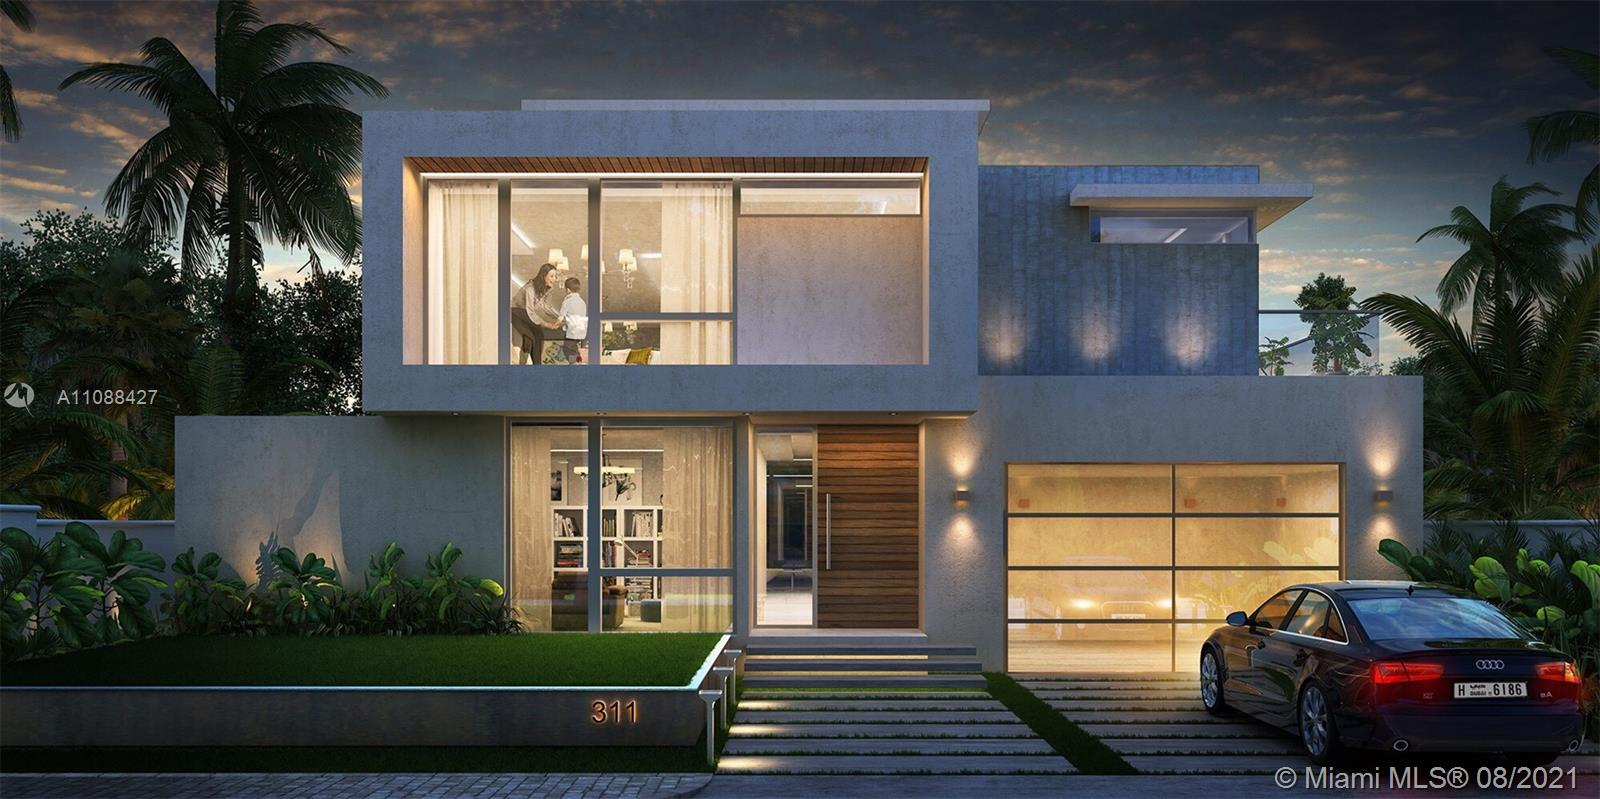 2021 Brand New Modern masterpiece built with the finest finishes in Sunny Isles Beach. A sleek architectural design offering a superb floor plan comprising 5 bedrooms, 5.5 bathrooms, 2 car garage, & laundry room. The property conveys the sensibility of South Florida living with its enormous impact windows, wraparound terrace & rooftop lounge w/ outdoor kitchen. Gorgeous gourmet chef ultra-deluxe kitchen with modern appliances. Luxurious master suite w/ breakfast area and designer luxe bathroom. All bedrooms are generously sized with spacious walk-in closets and seamless Italian doors. Contemporary elevator and custom wood stairs.  The last opportunity to acquire a new construction home at this price point. Walk to the ocean. A+ School district. *Home ready for occupancy December 21*